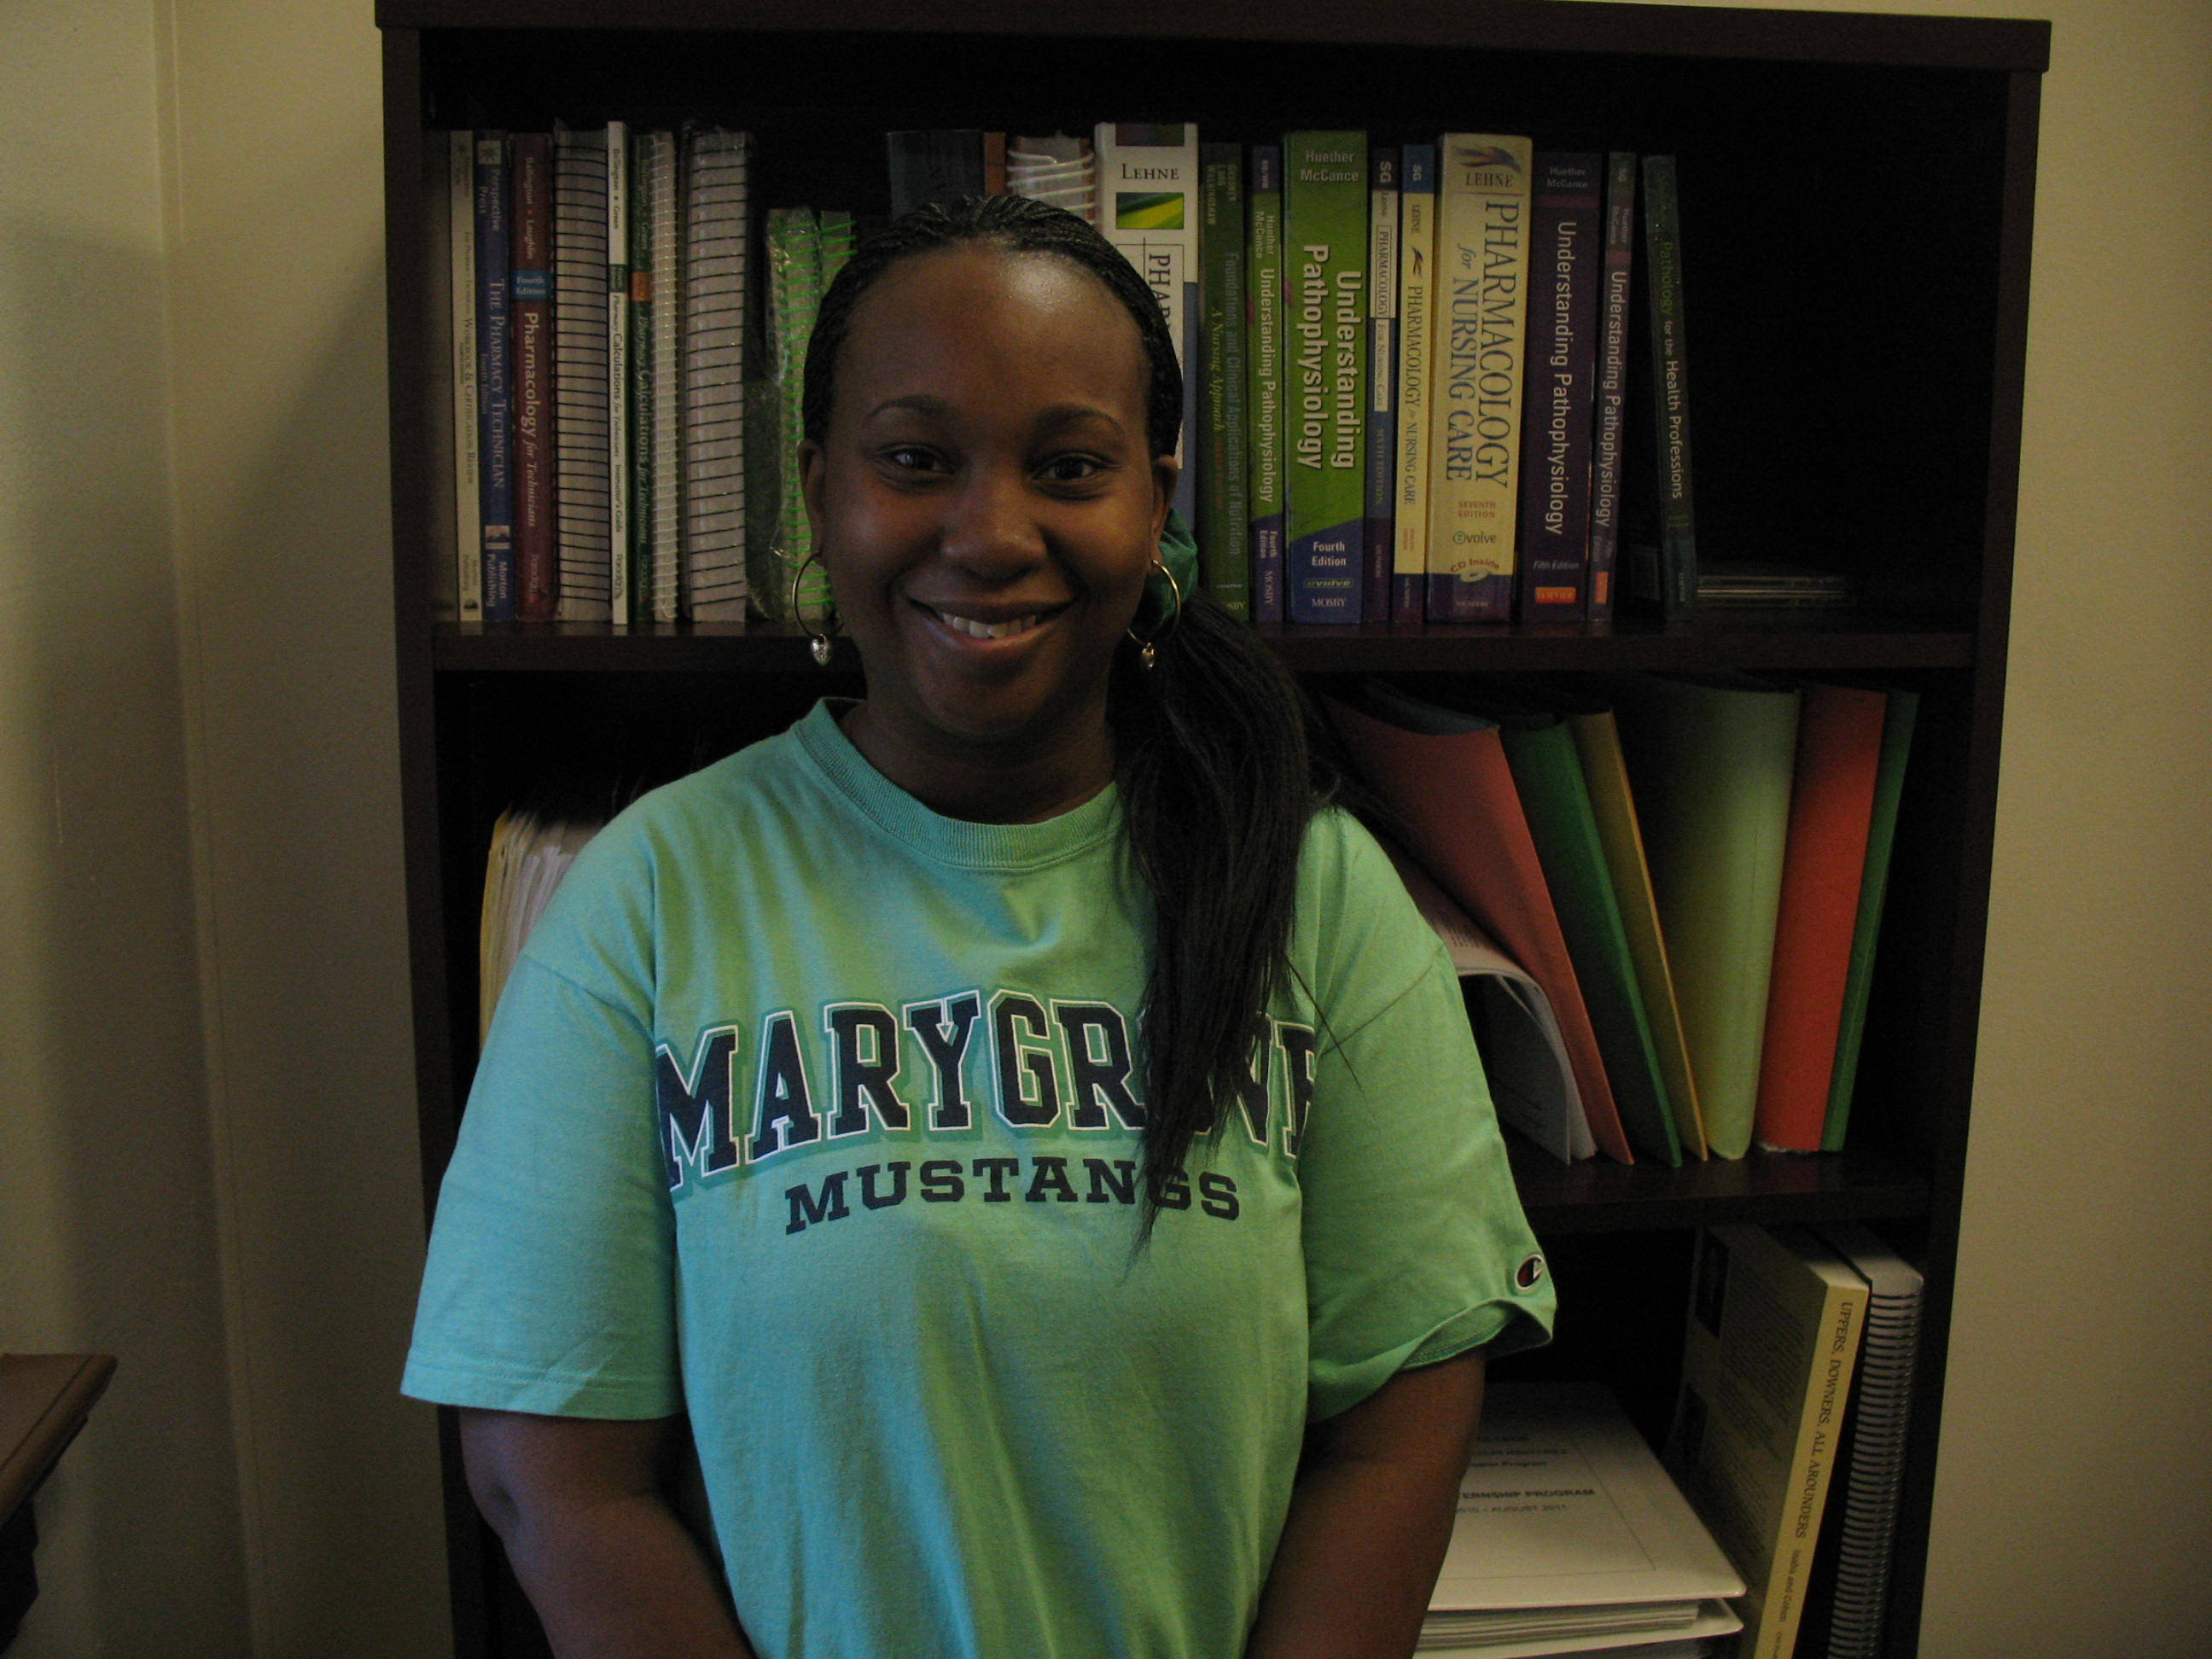 2012 marygrove campus news marygrove college has had 18 students complete its pharmacy technician program